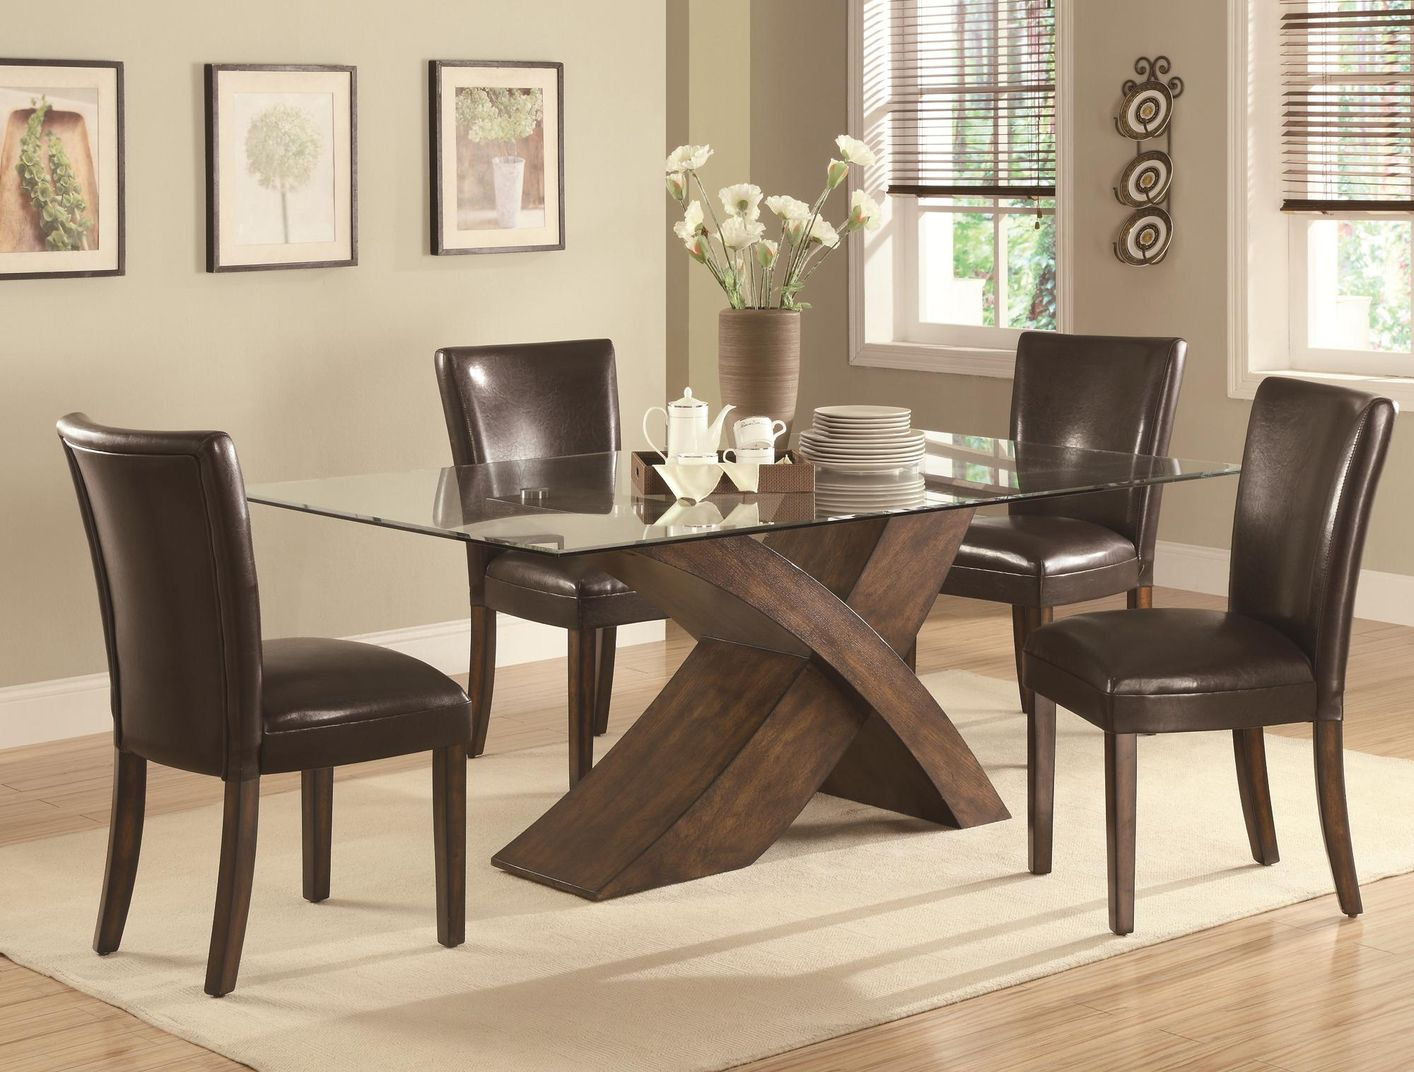 Coaster Nessa 103051 103053 Brown Wood And Glass Dining Table Set